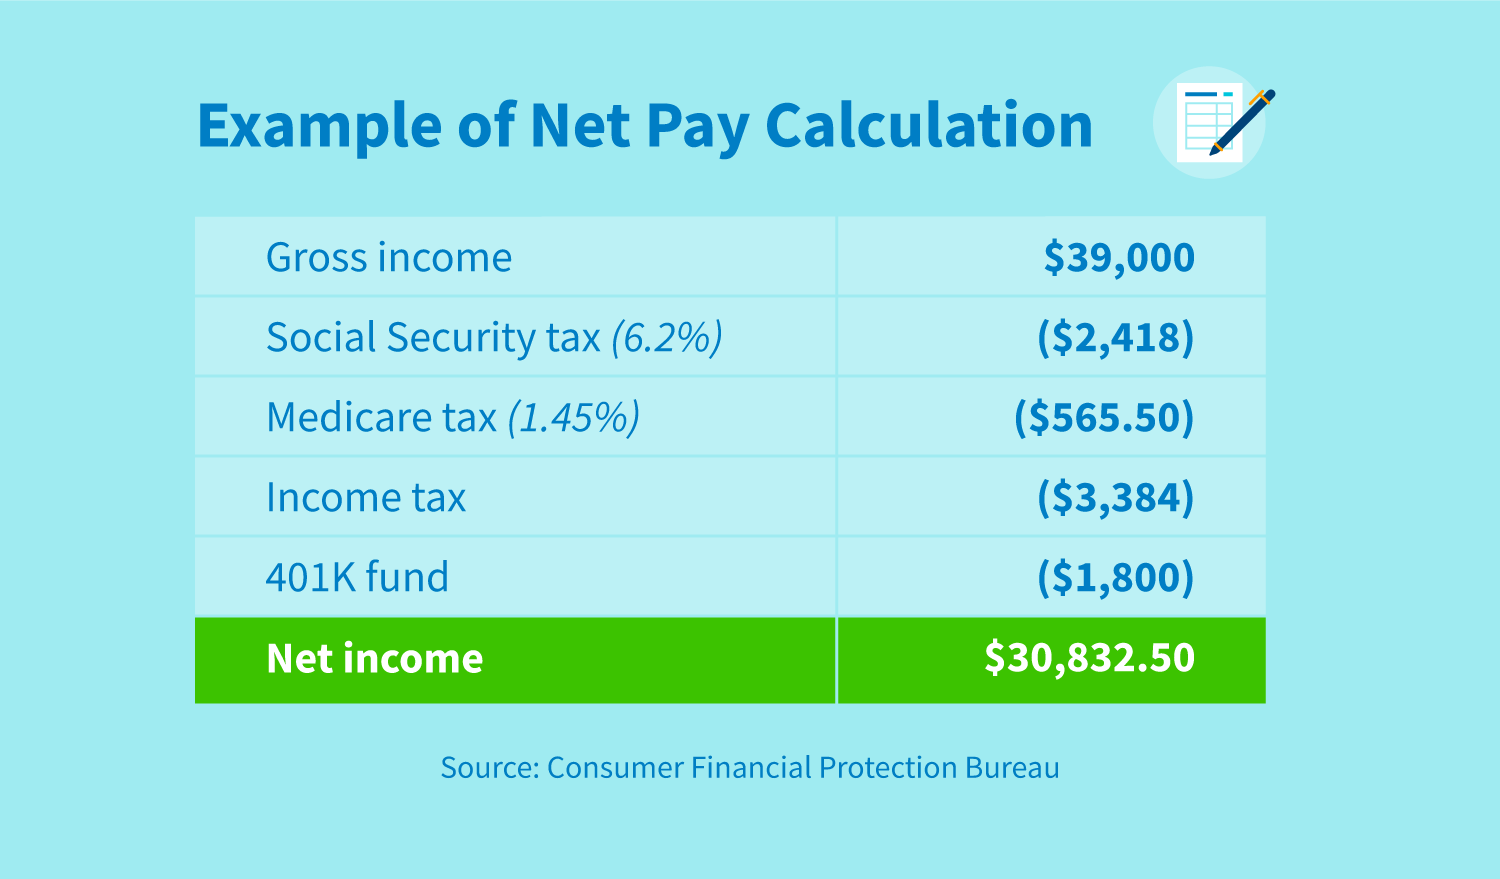 A chart displaying an example of net pay calculation.